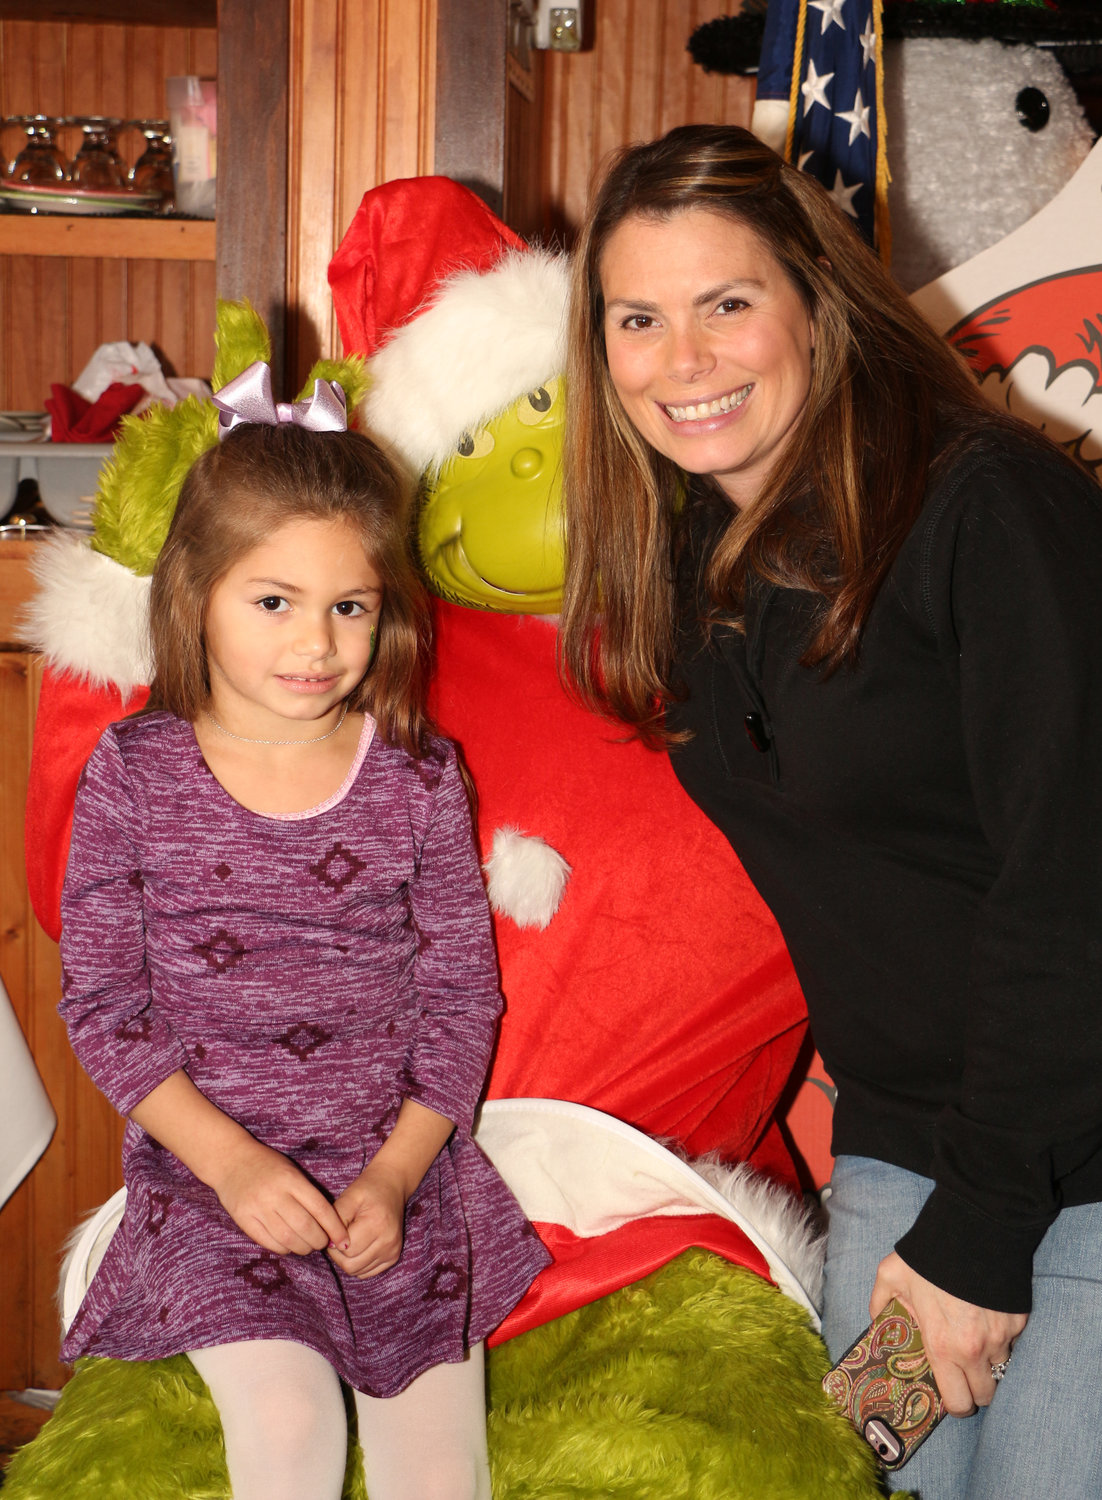 Averi Murnane, 4, and her mom Cheryl Murnane hung out with the Grinch after lunch.